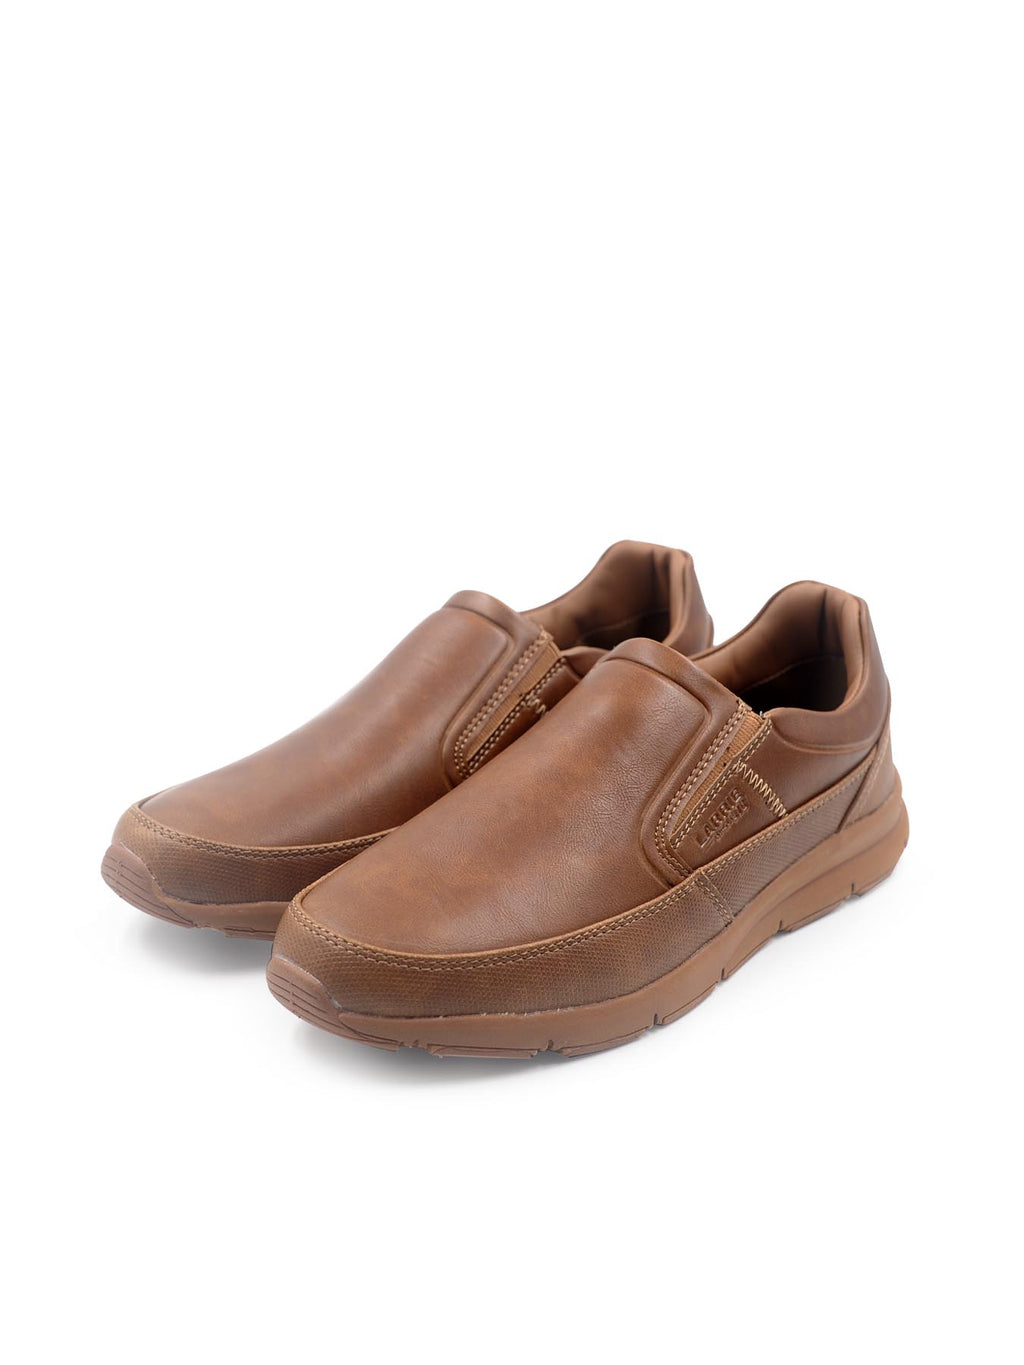 Larrie Tan Classic Slip On Shoes